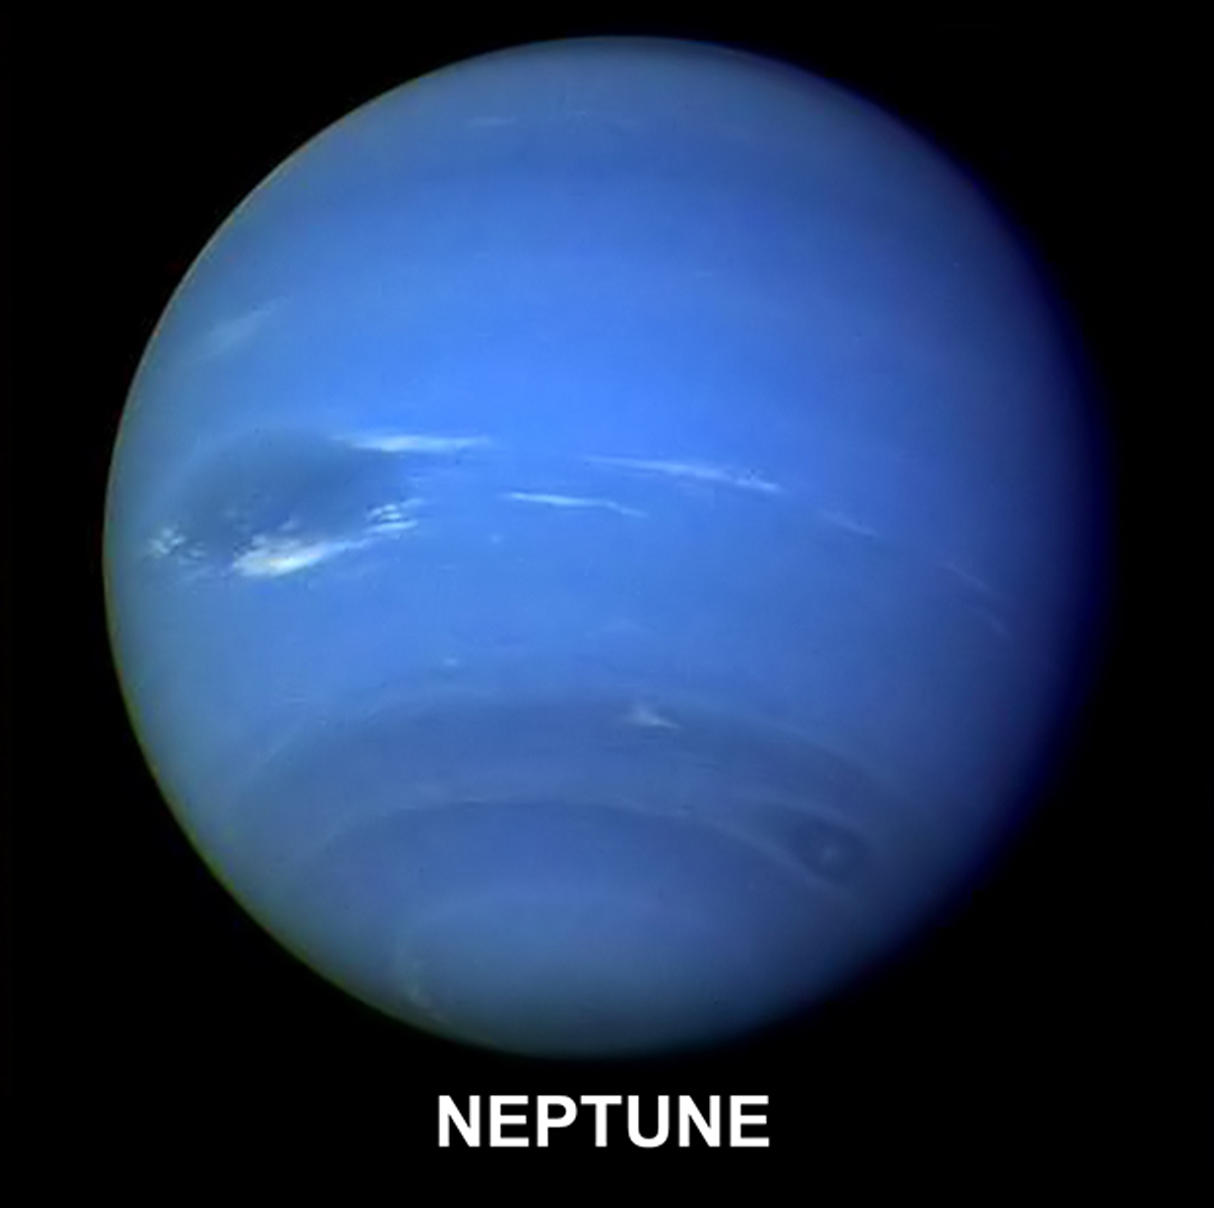 twelfth house, twelfth house in astrology, twelfth house astrology, twelfth house astrology Neptune, 12th house astrology Neptune, what planet is the twelfth house ruled by in astrology